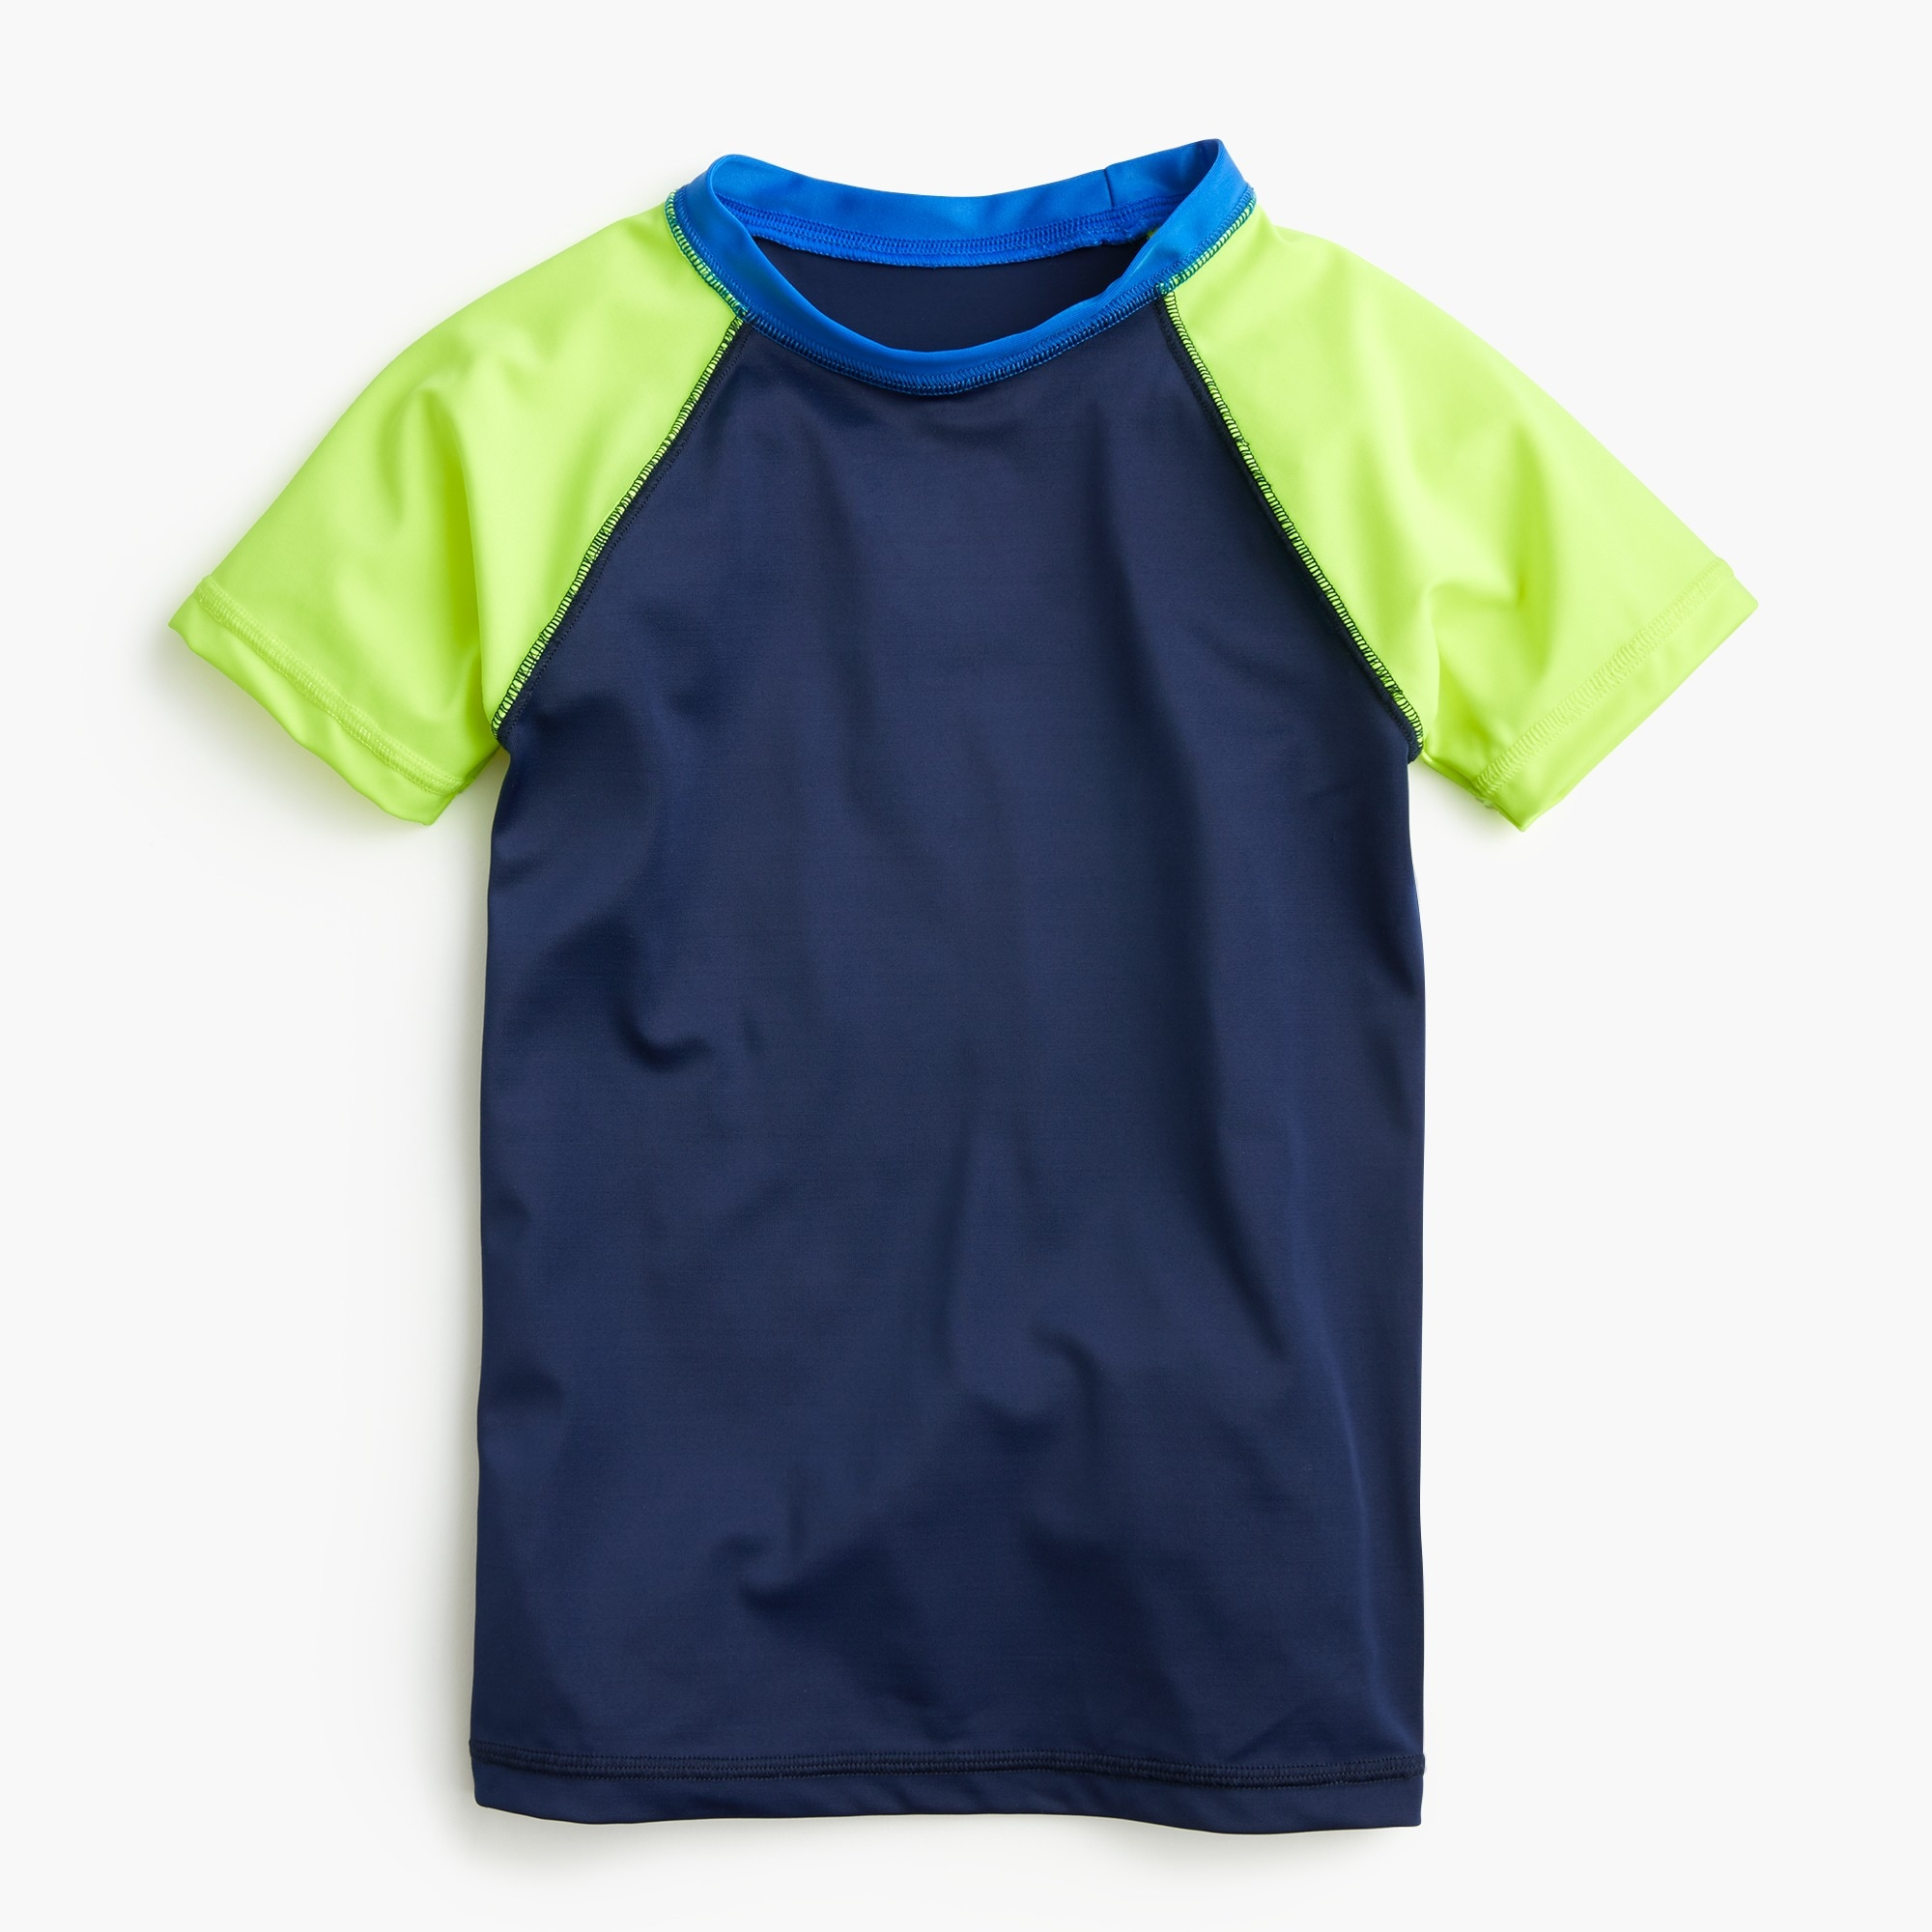 boys Boys' colorblock rash guard